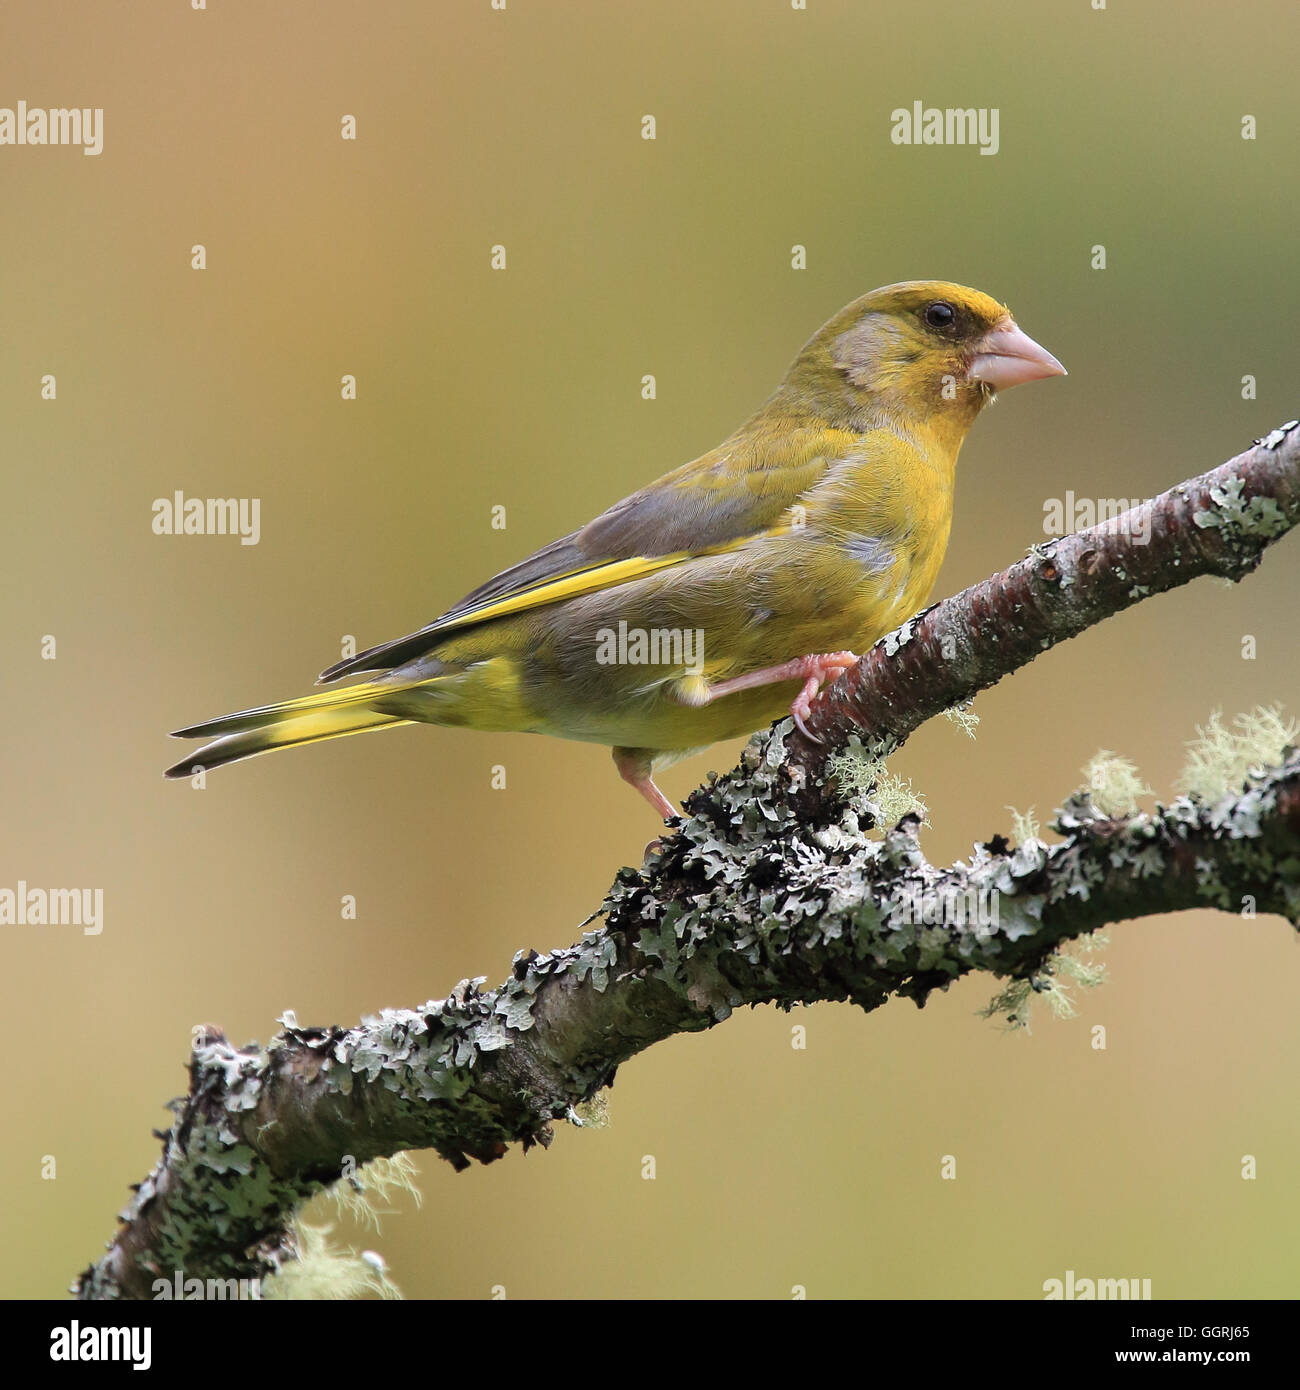 European Greenfinch, also known simply as Greenfinch, perched on a moss-like branch - Stock Image